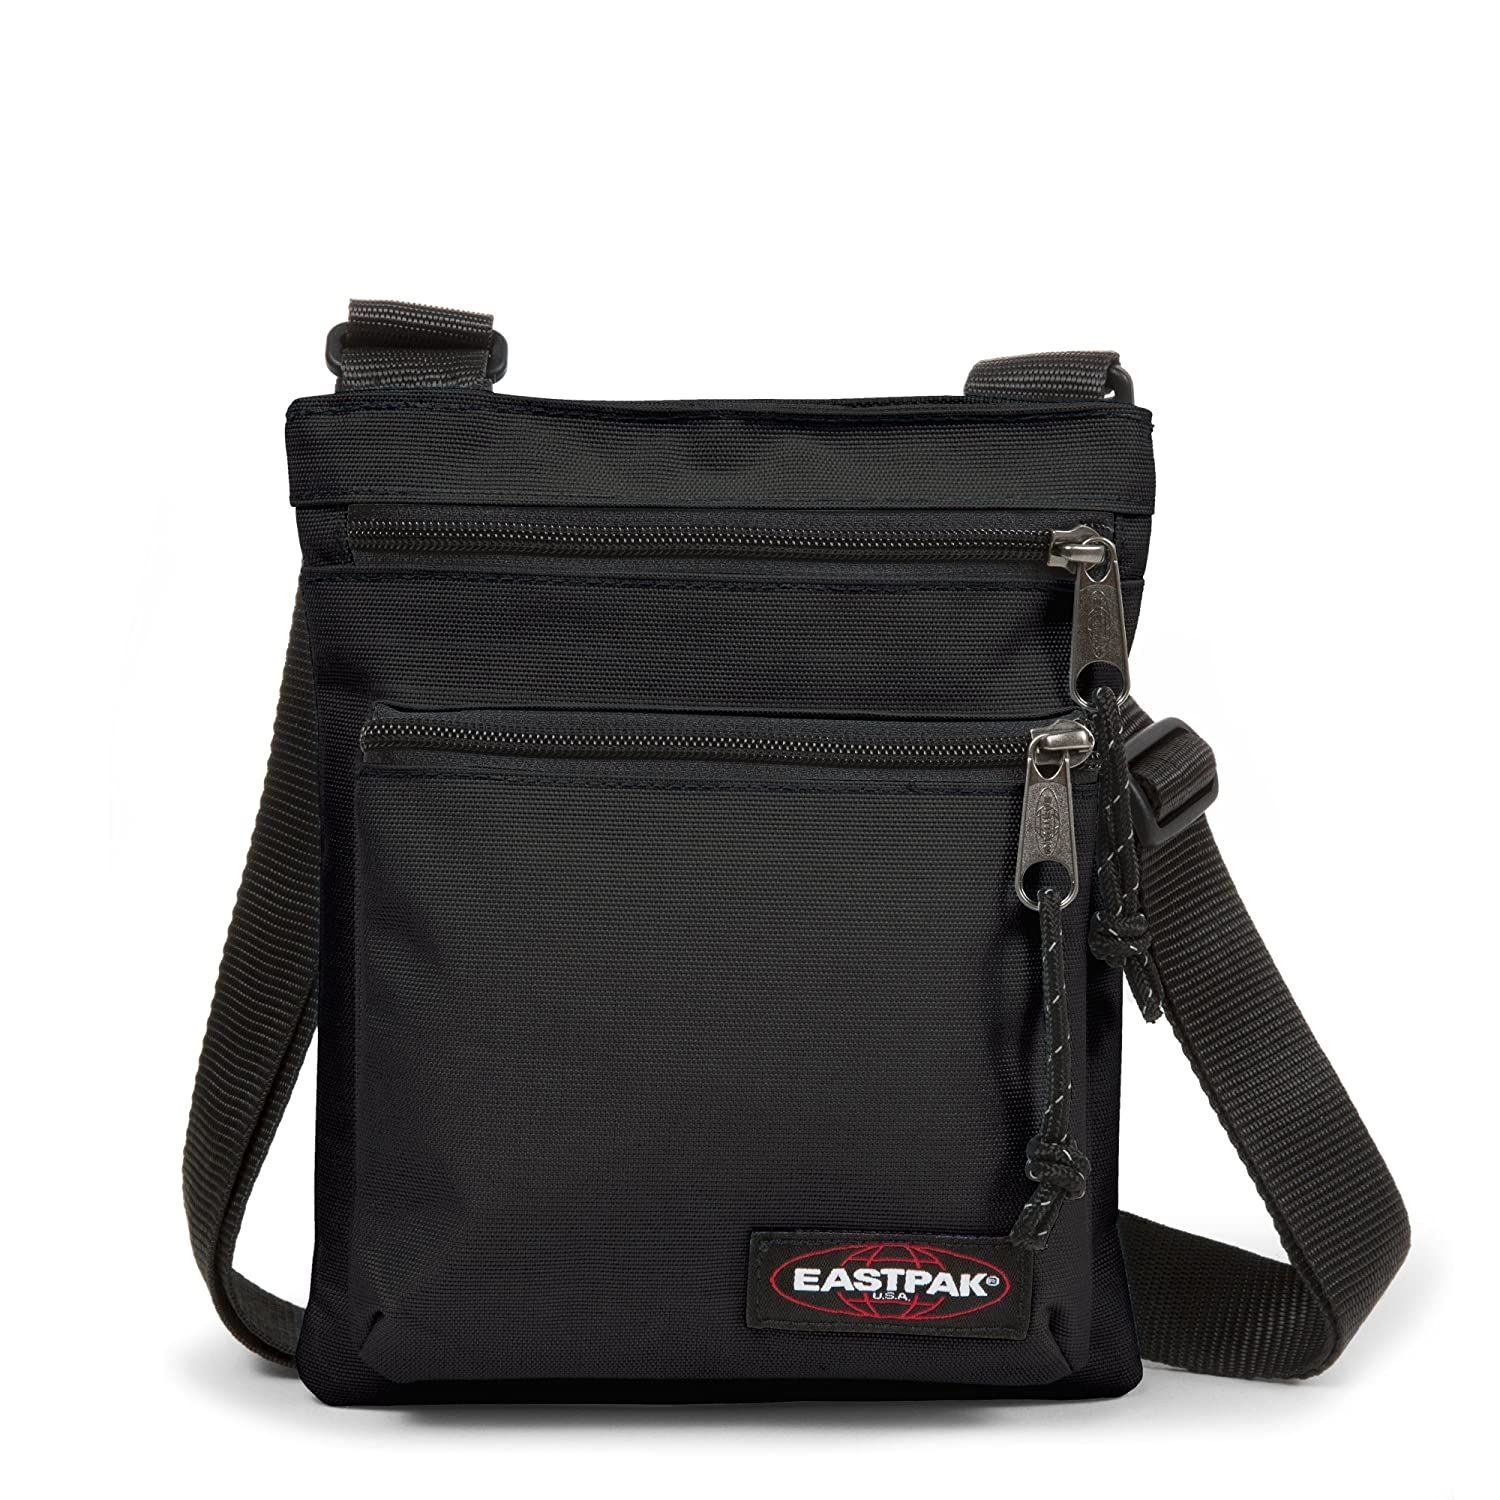 eastpak rusher messenger bag one size black